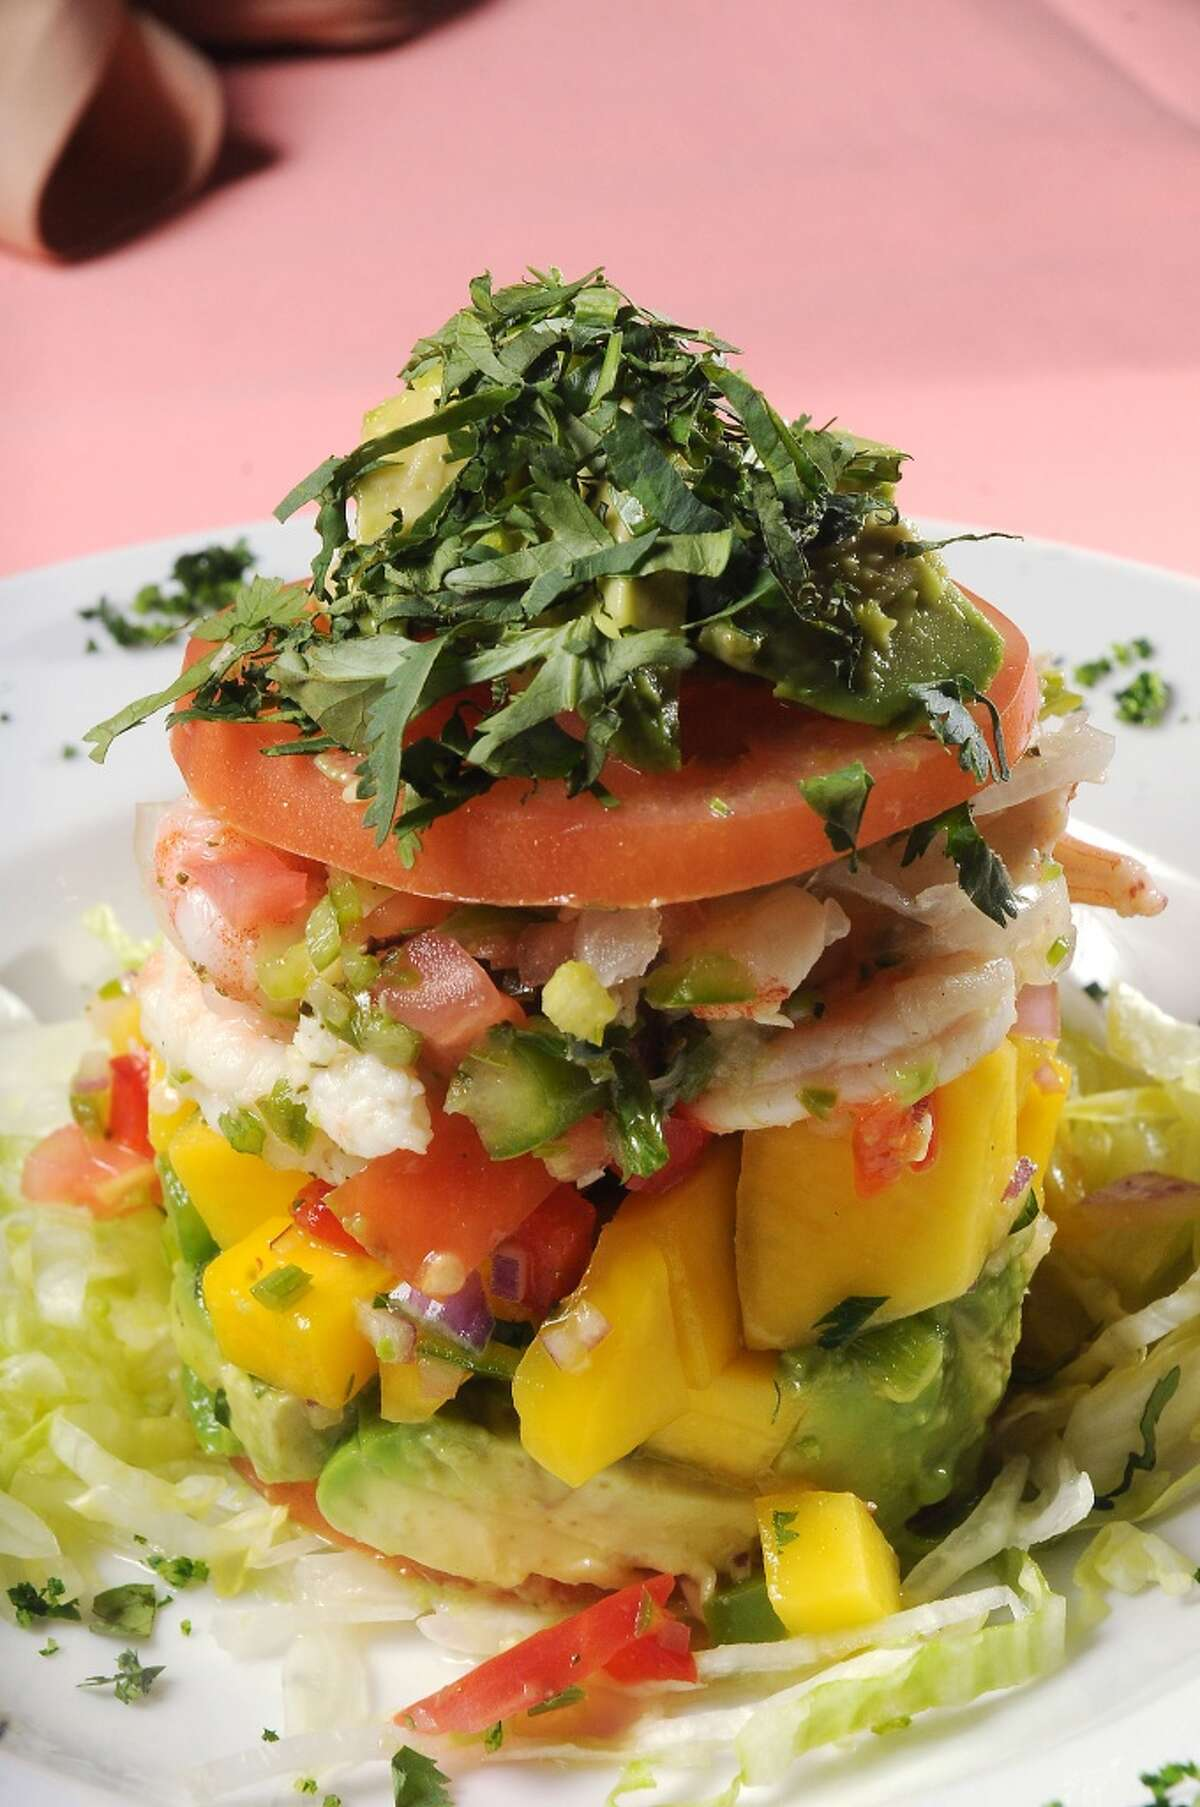 The napoleon de Ceviche: Tower of lime-marinated snapper and gulf shrimp with pico de mango and avocado at the new Pico's Mex-Mex restaurant on Kirby at Richmond Tuesday March 11, 2014.(Dave Rossman photo)